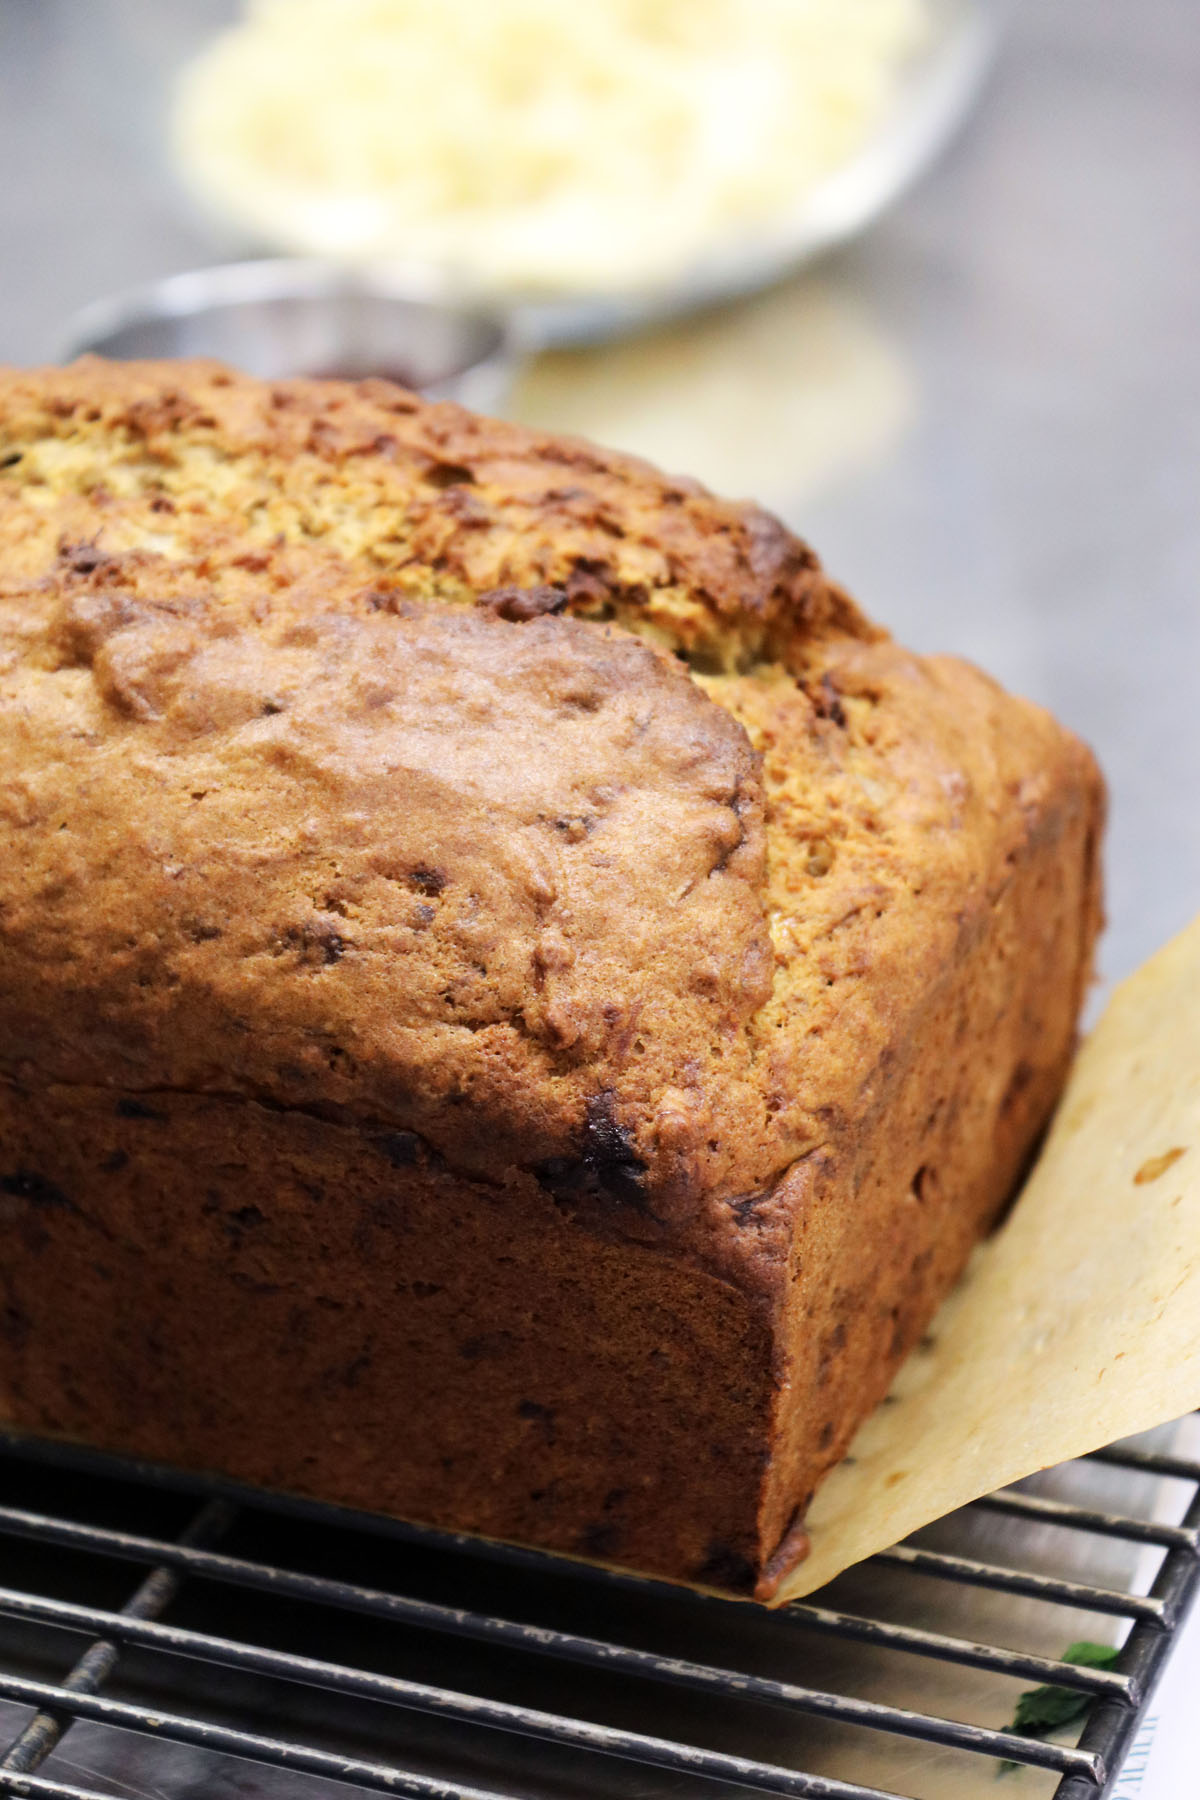 Overripe bananas make a great banana bread